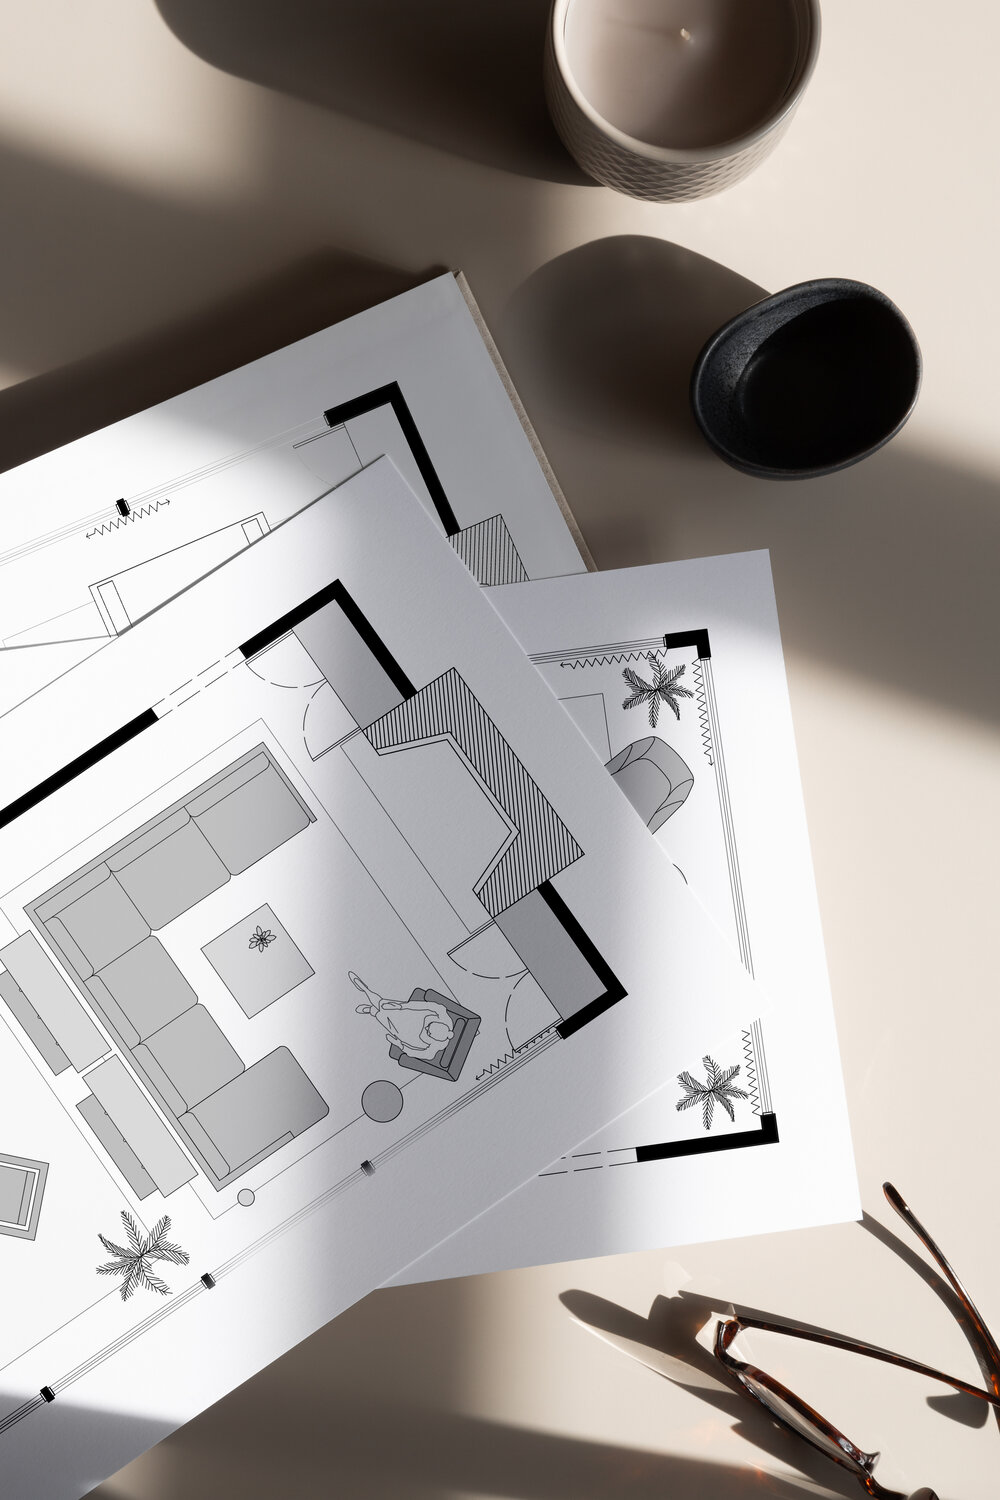 Interior-Design-Services---Floor-plans,-space-planning,-and-furniture-arrangements-made-simple.jpg